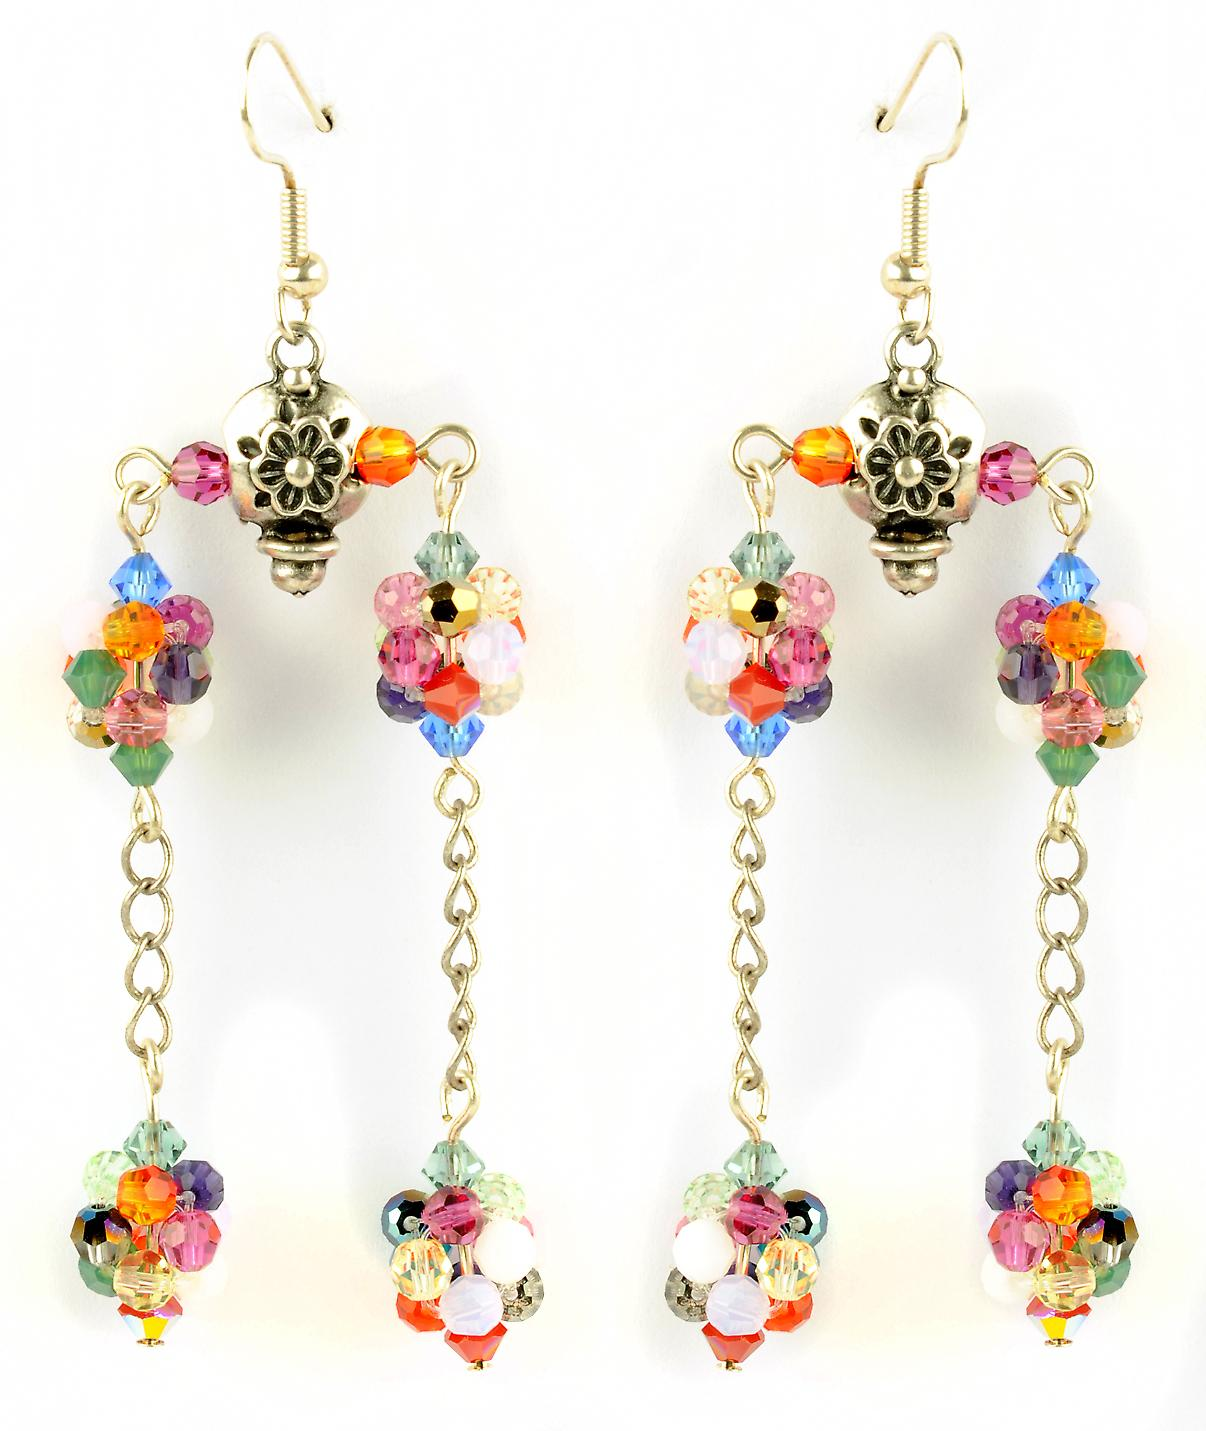 Waooh - Fashion Jewellery - WJ0787 - On Earrings with Swarovski Green Blue Pink Purple White - Frame Color Silver